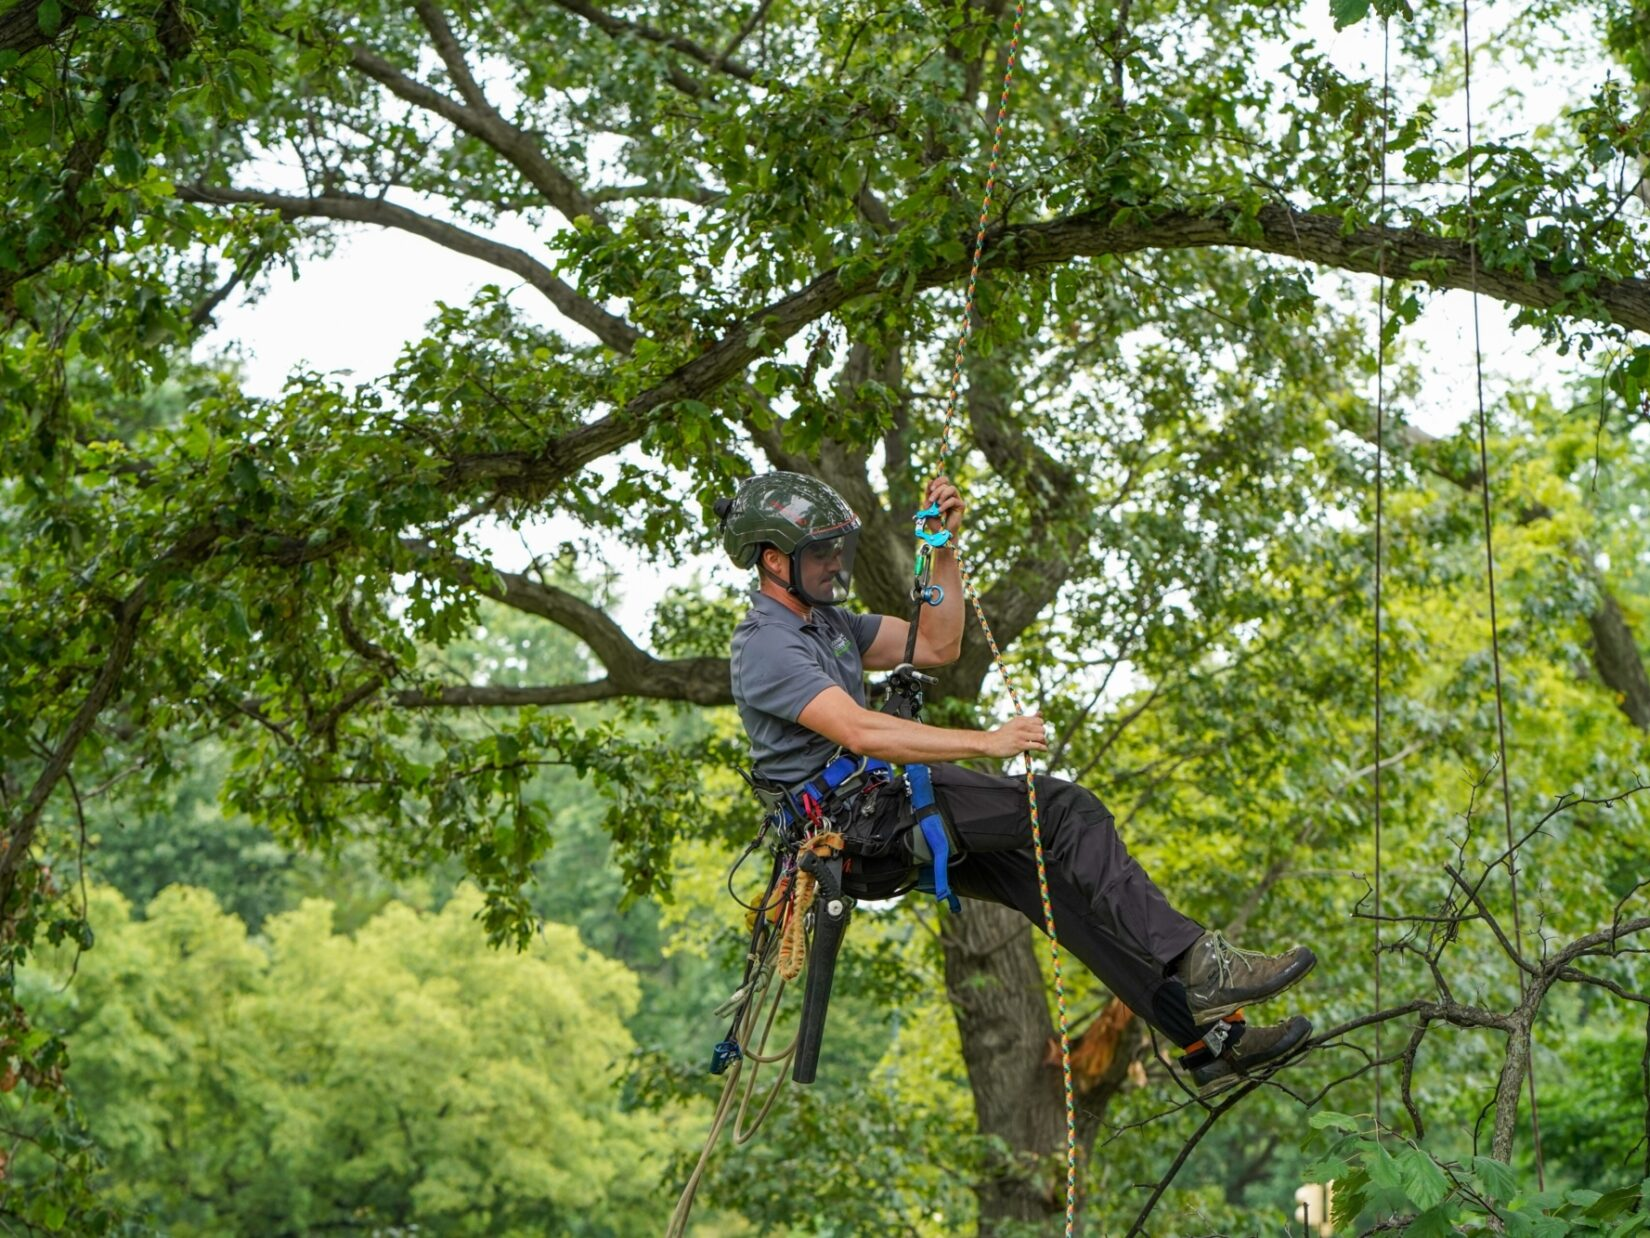 An arborist hangs by a harnesss from the high branches of a tree